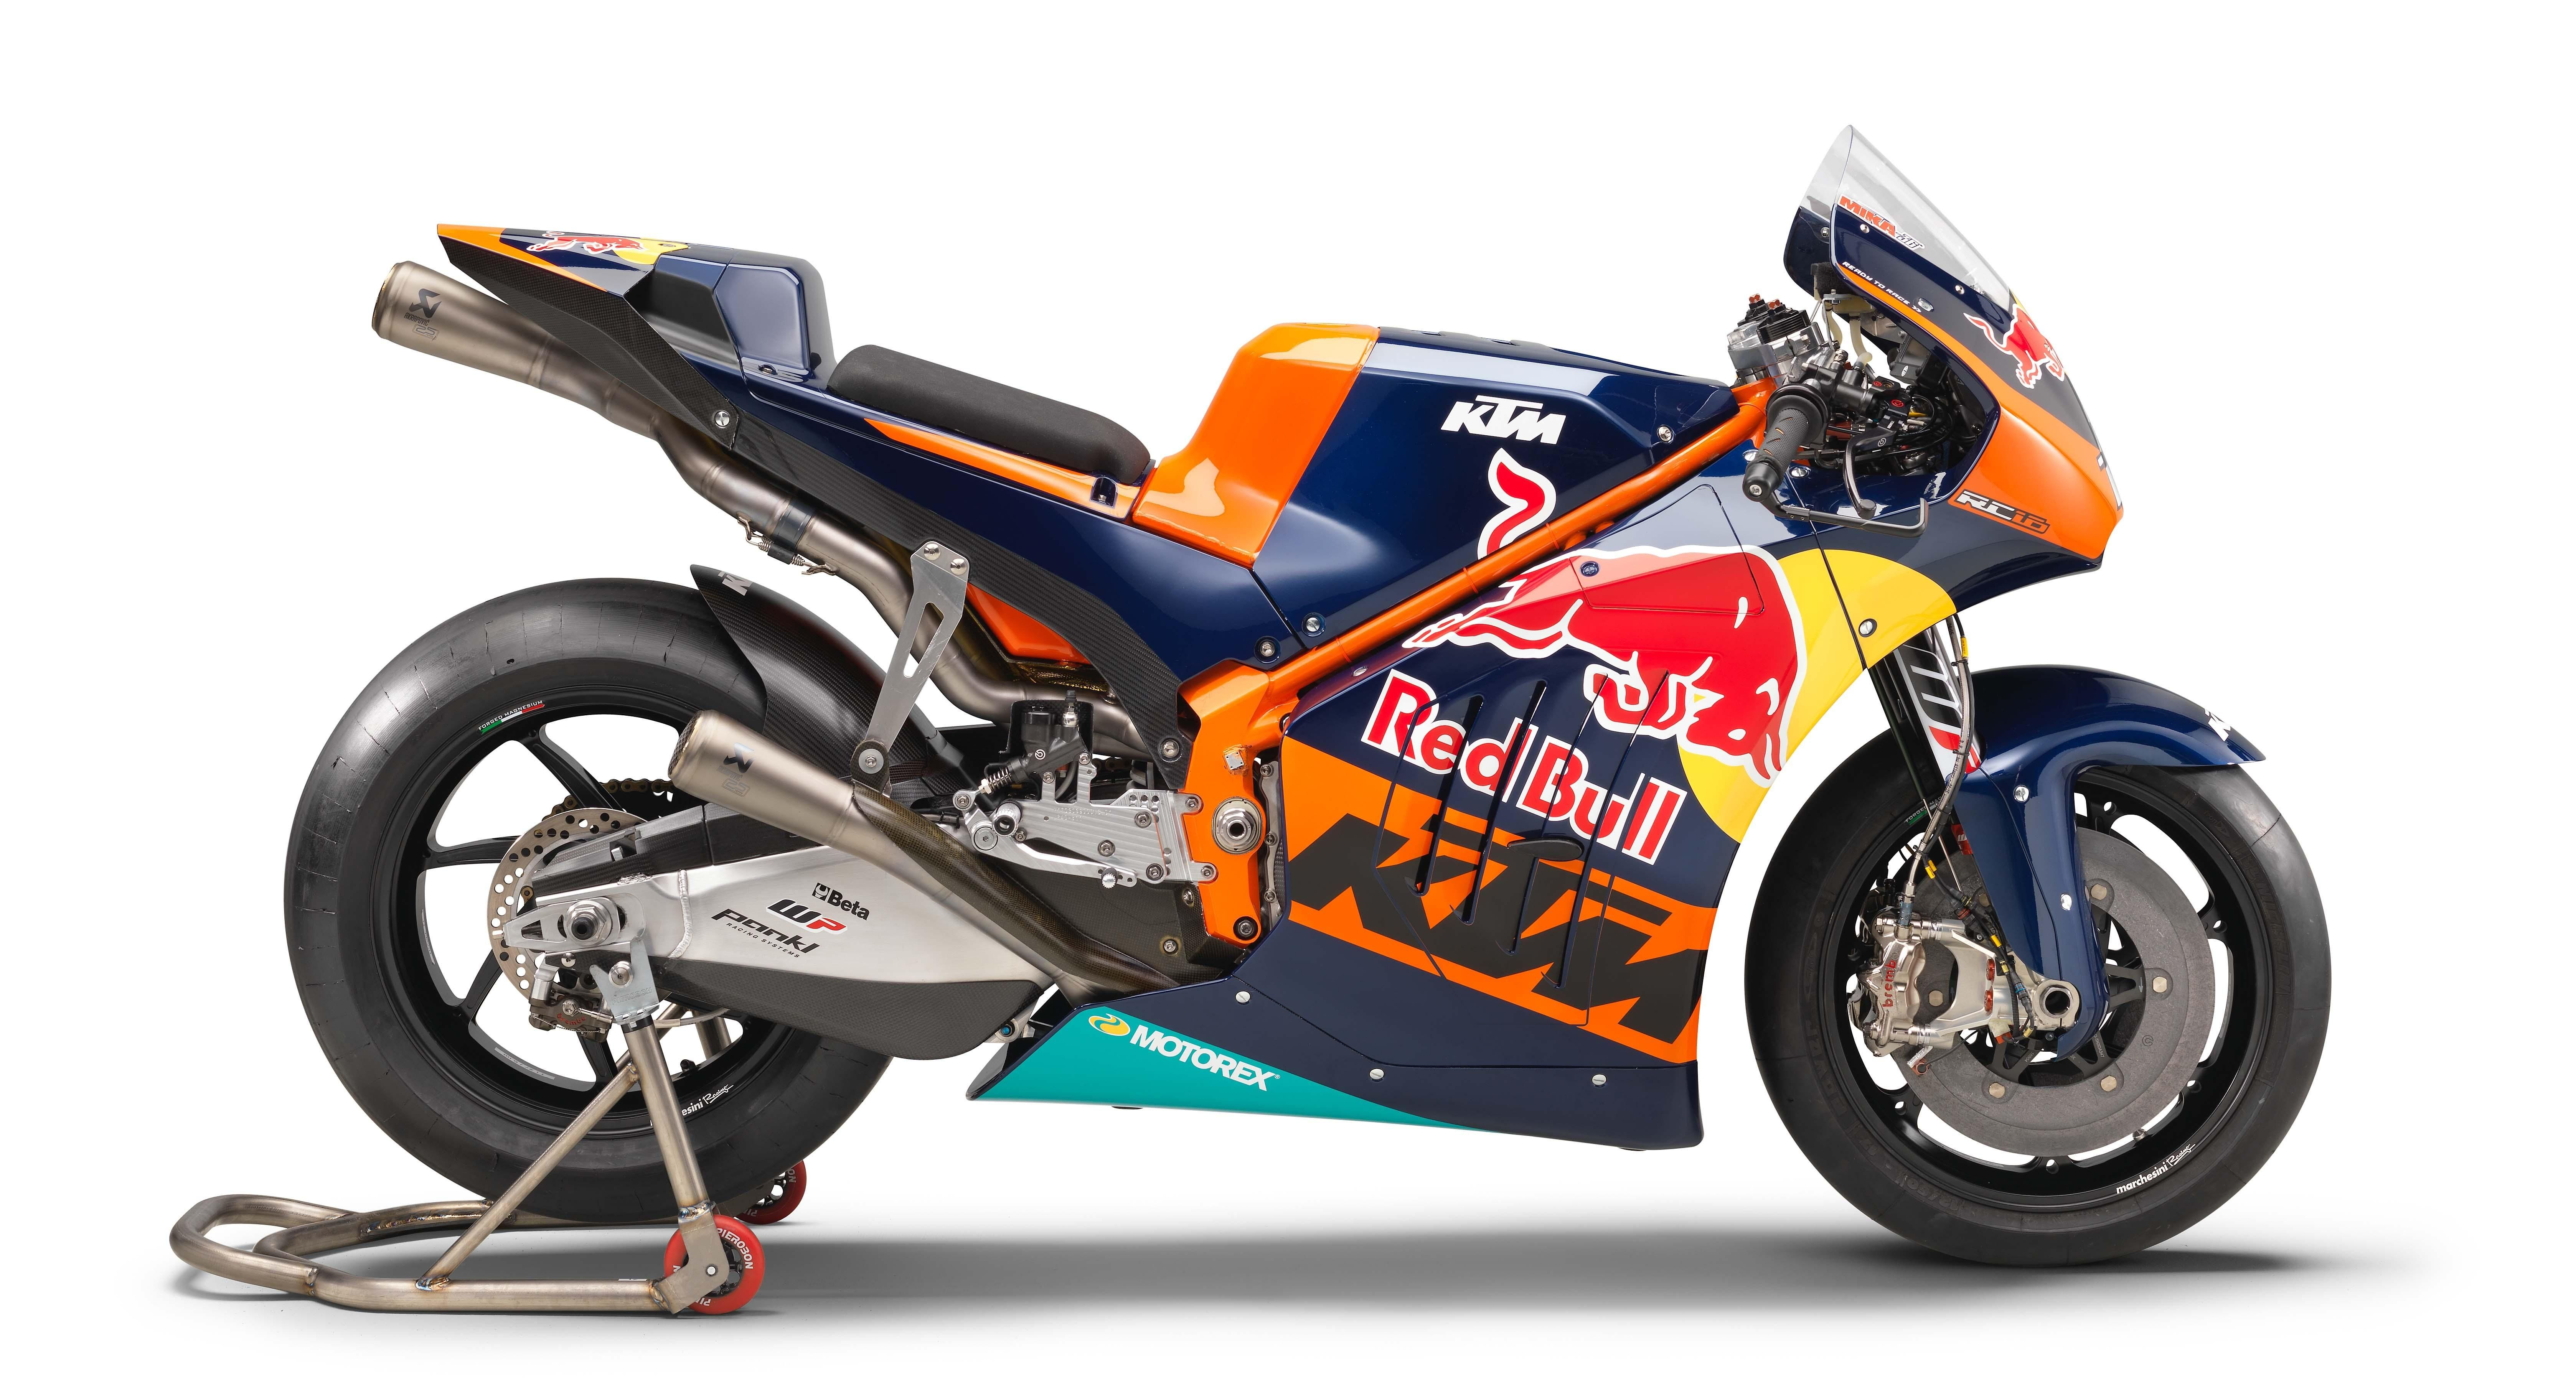 I See Your Rcv And Raise You A Ktm Rc16 Red Bull Hd Wallpaper From